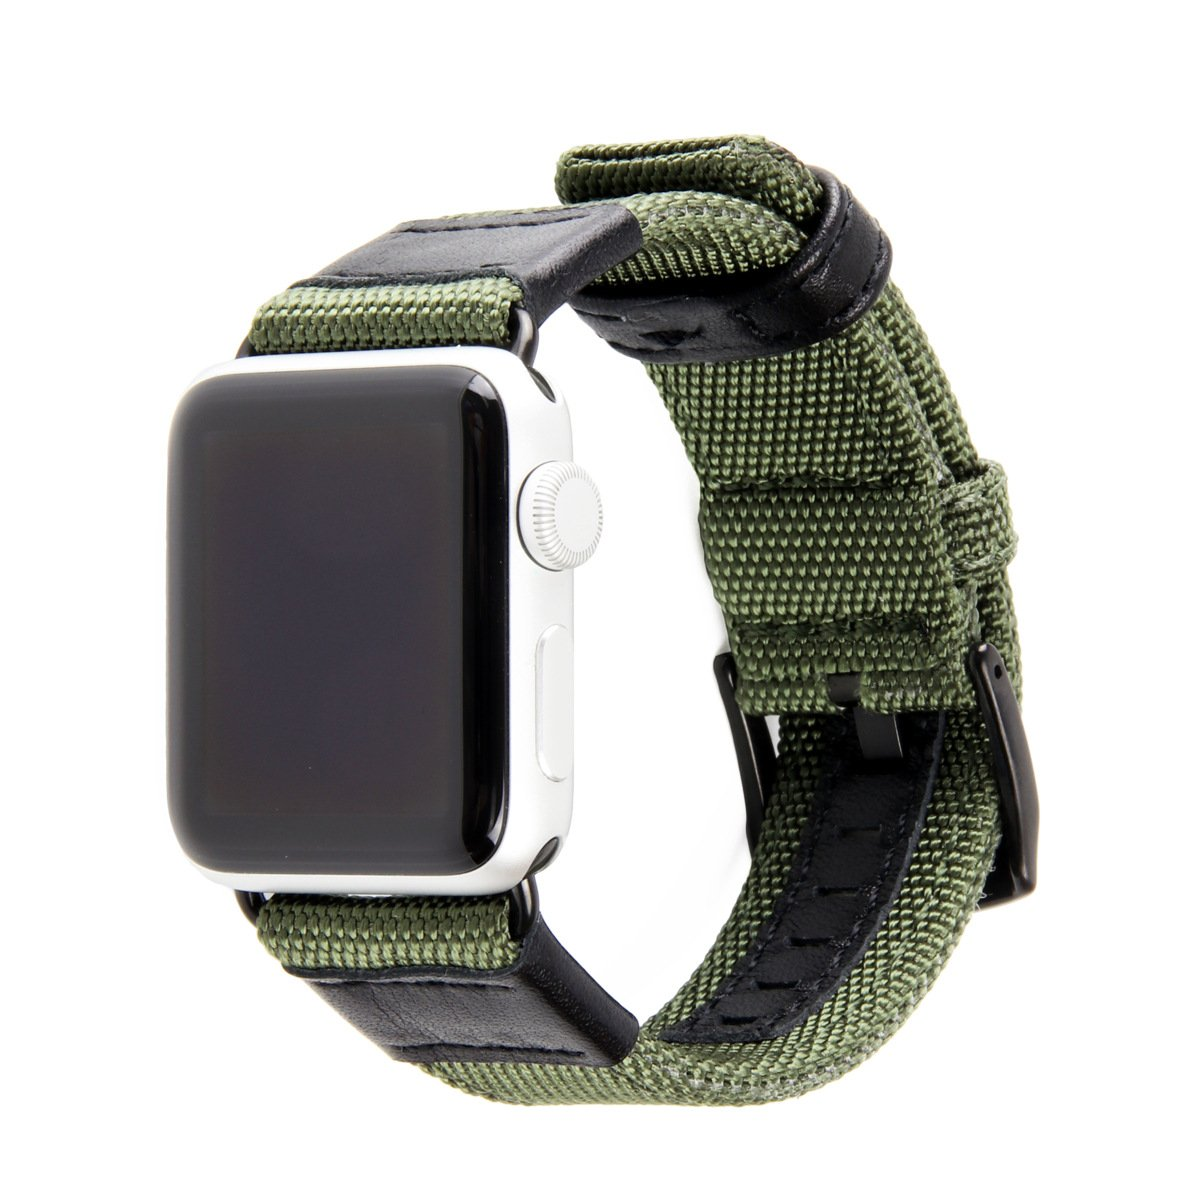 Herbstze for Apple Watch Band Woven Nylon iWatch Strap Replacement Bands with Stainless Metal Clasp for Apple Watch Series 3 Series 2 Series 1 Sport and Edition (Army Green, 42mm)